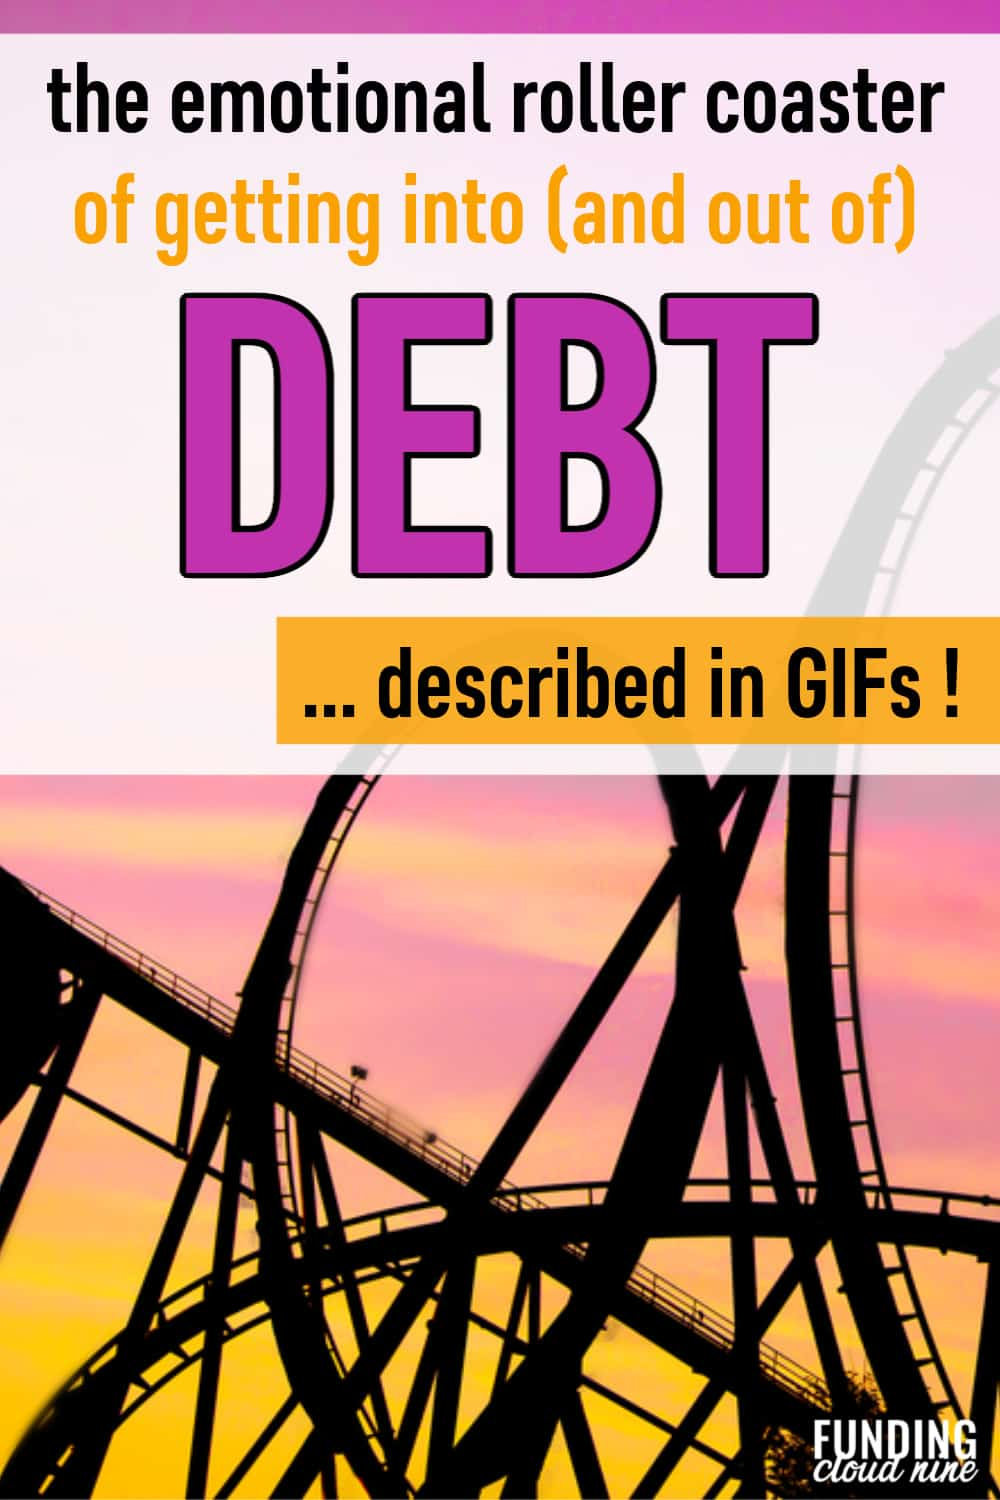 Debt doesn't just affect your wallet; it also affects your emotional state. These gifs describe the hidden side of debt - from the anxiety and hopelessness to the confidence and freedom that comes with finally paying off debt.